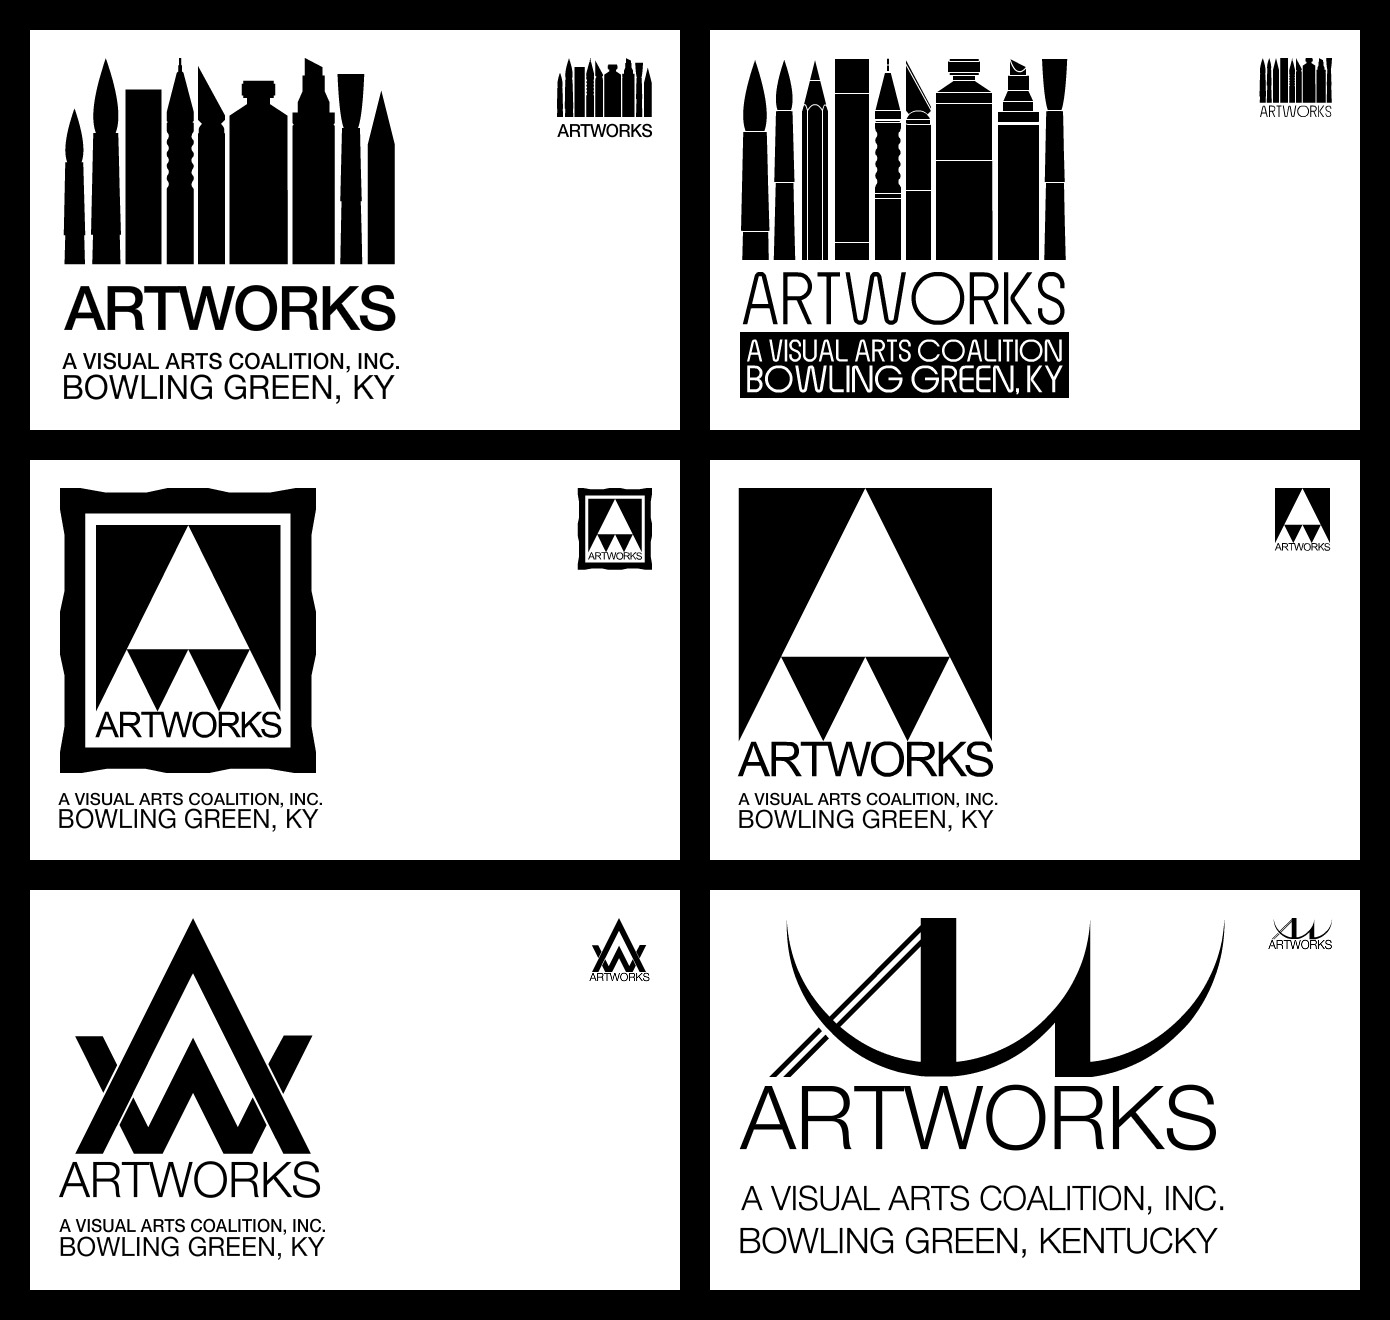 artworks logo final composition